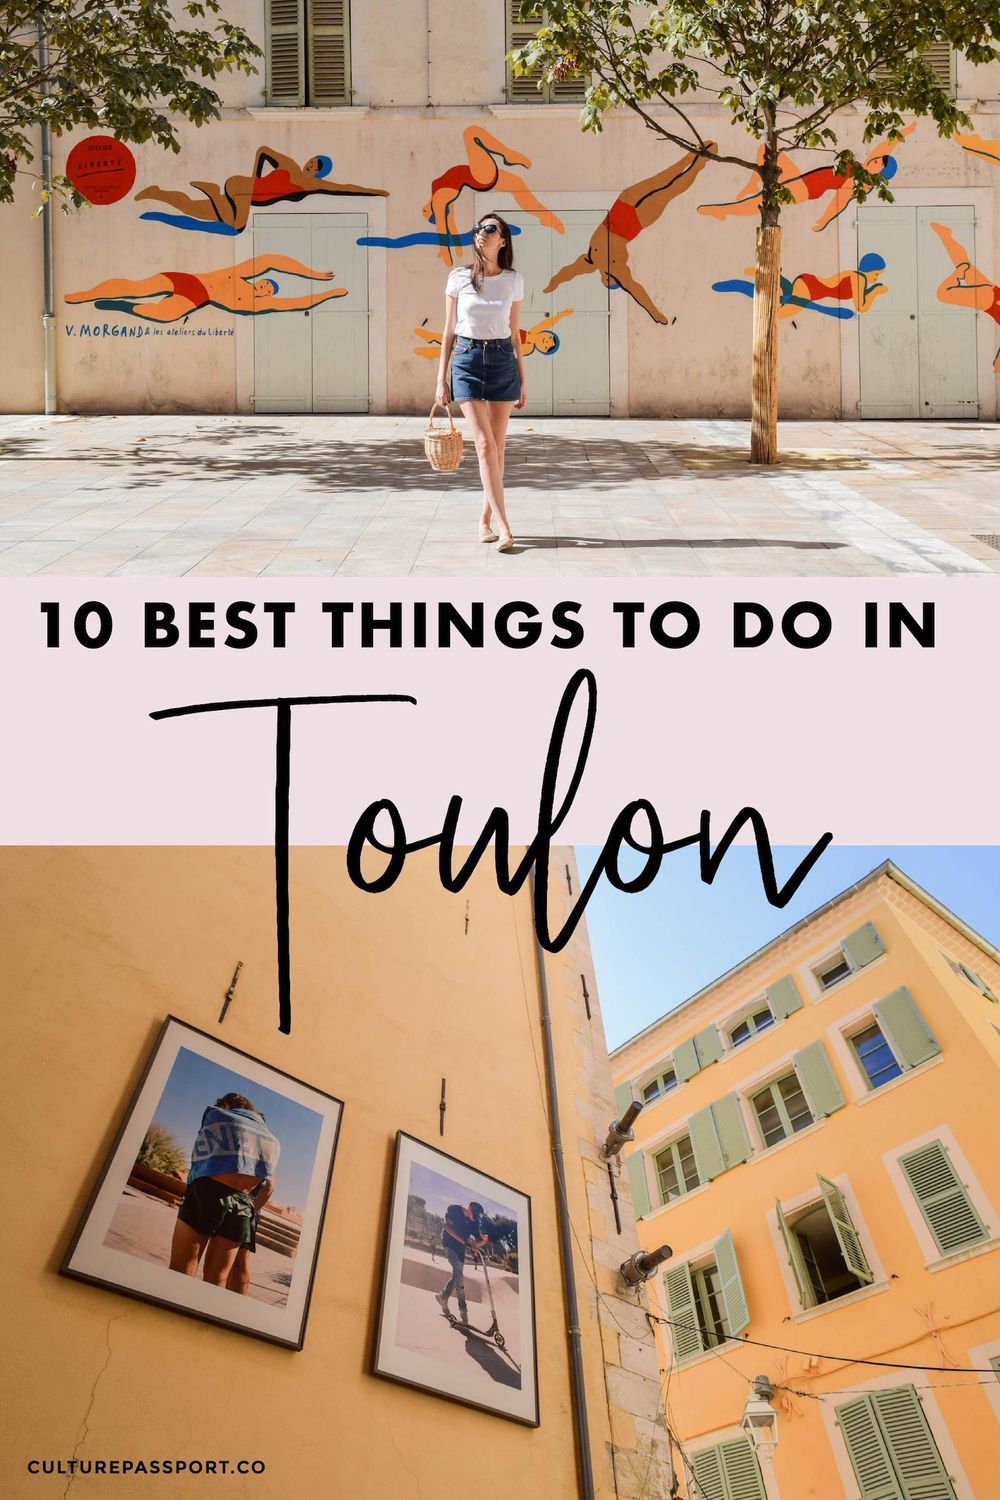 10 Best Things to Do in Toulon France!